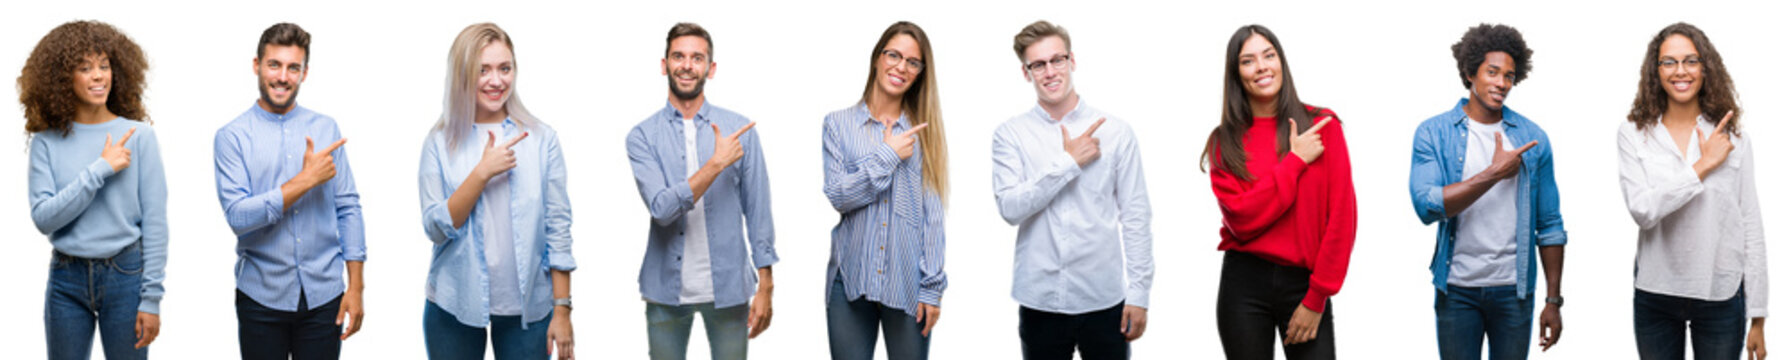 Composition of african american, hispanic and caucasian group of people over isolated white background cheerful with a smile of face pointing with hand and finger up to the side with happy and natural